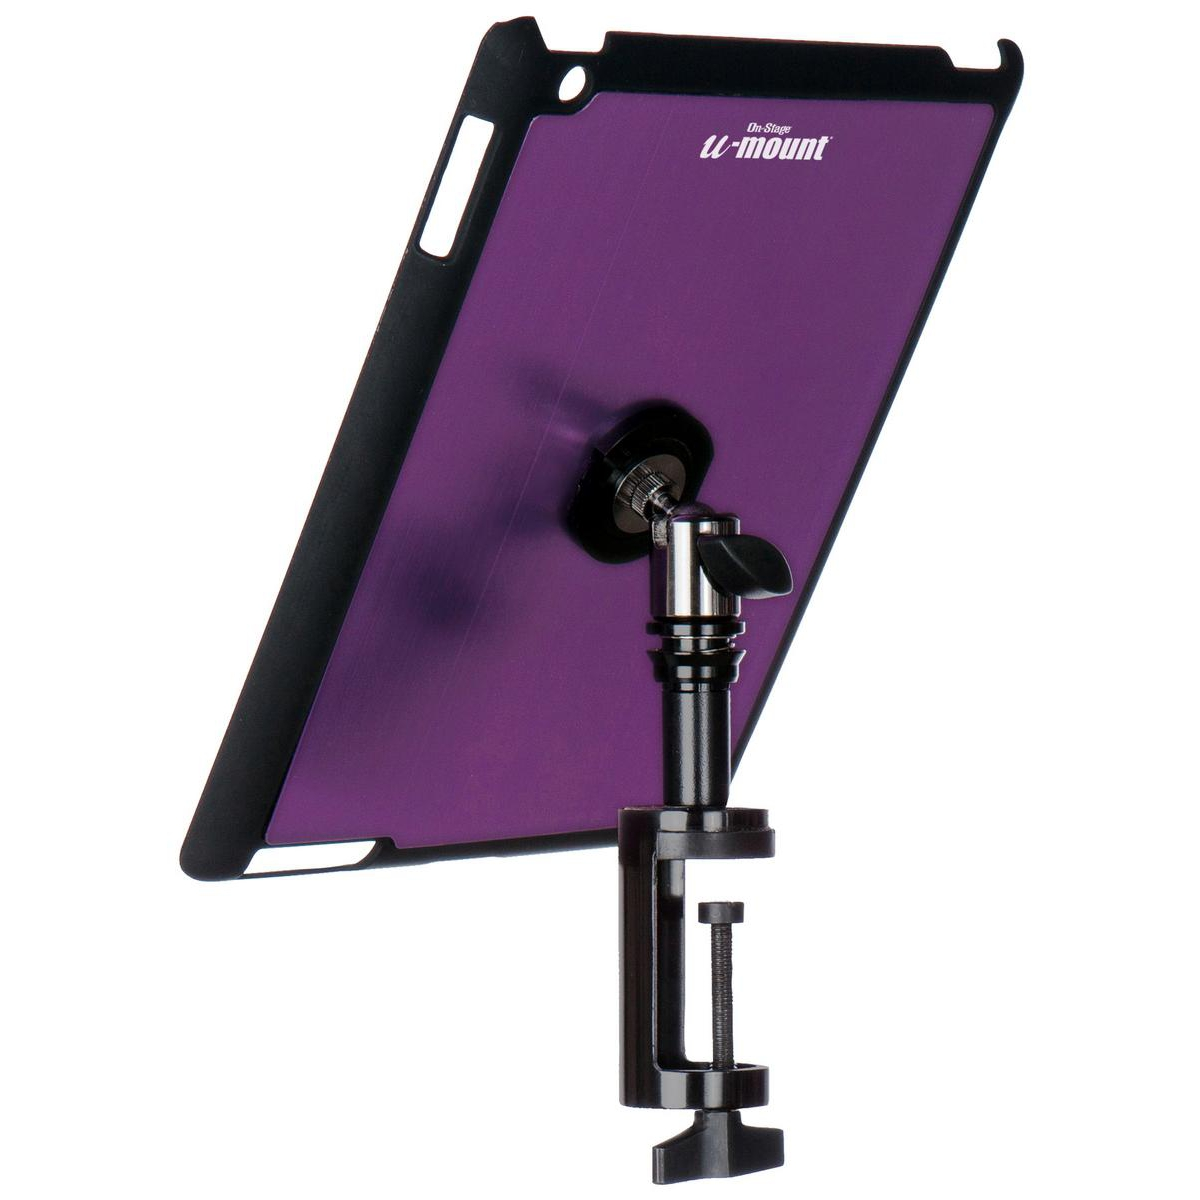 Tablet Mounts - Stands